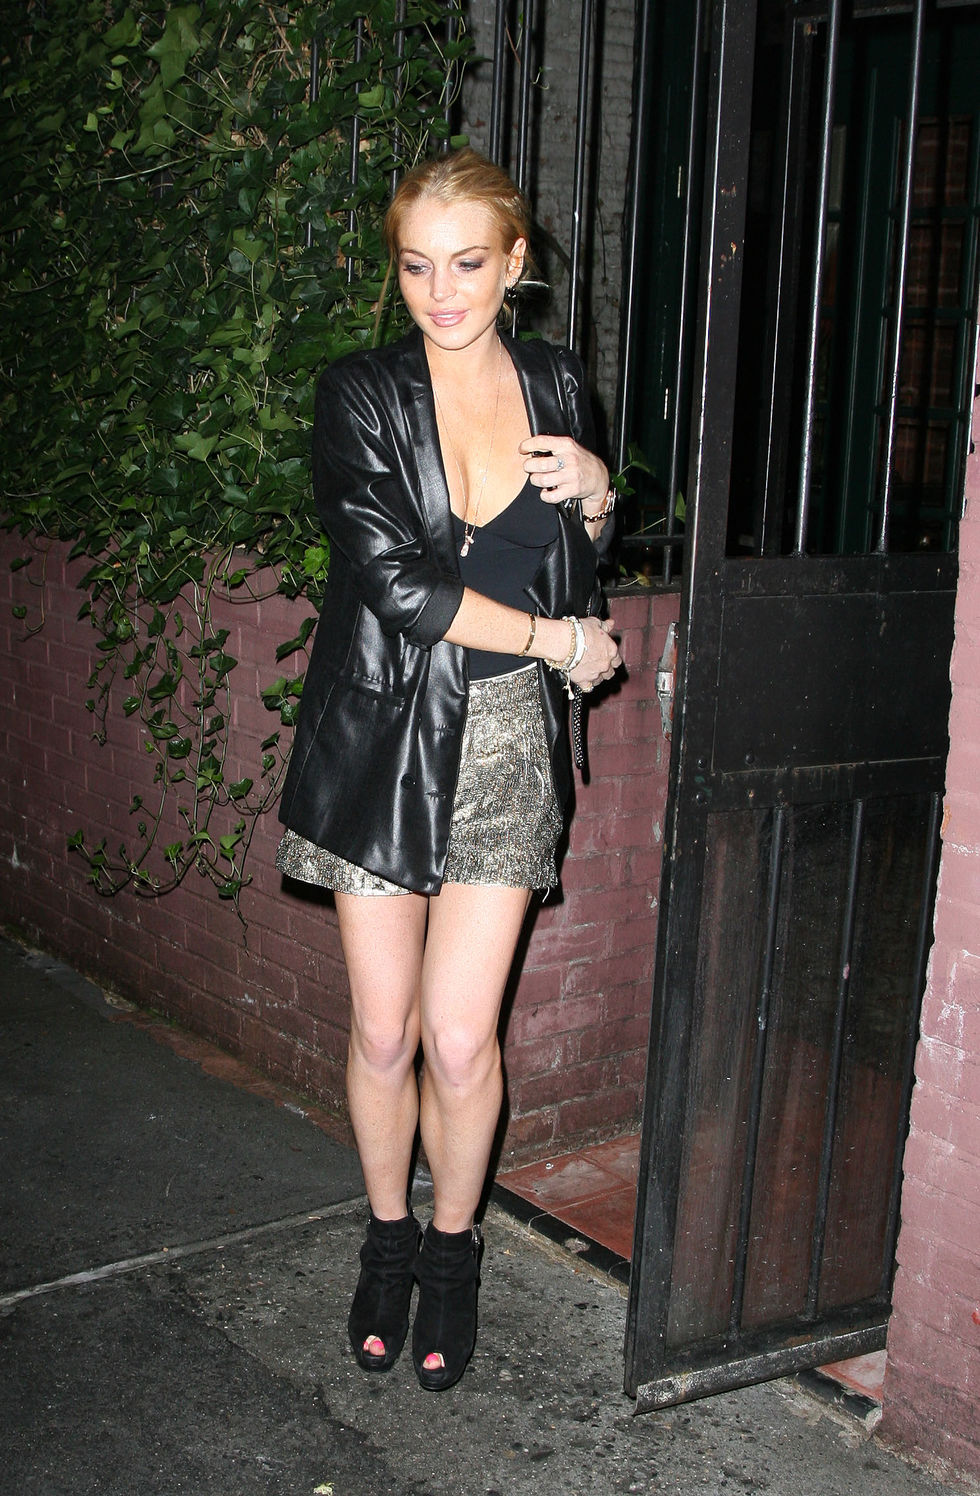 lindsay-lohan-leggy-candids-at-waverly-inn-in-new-york-01